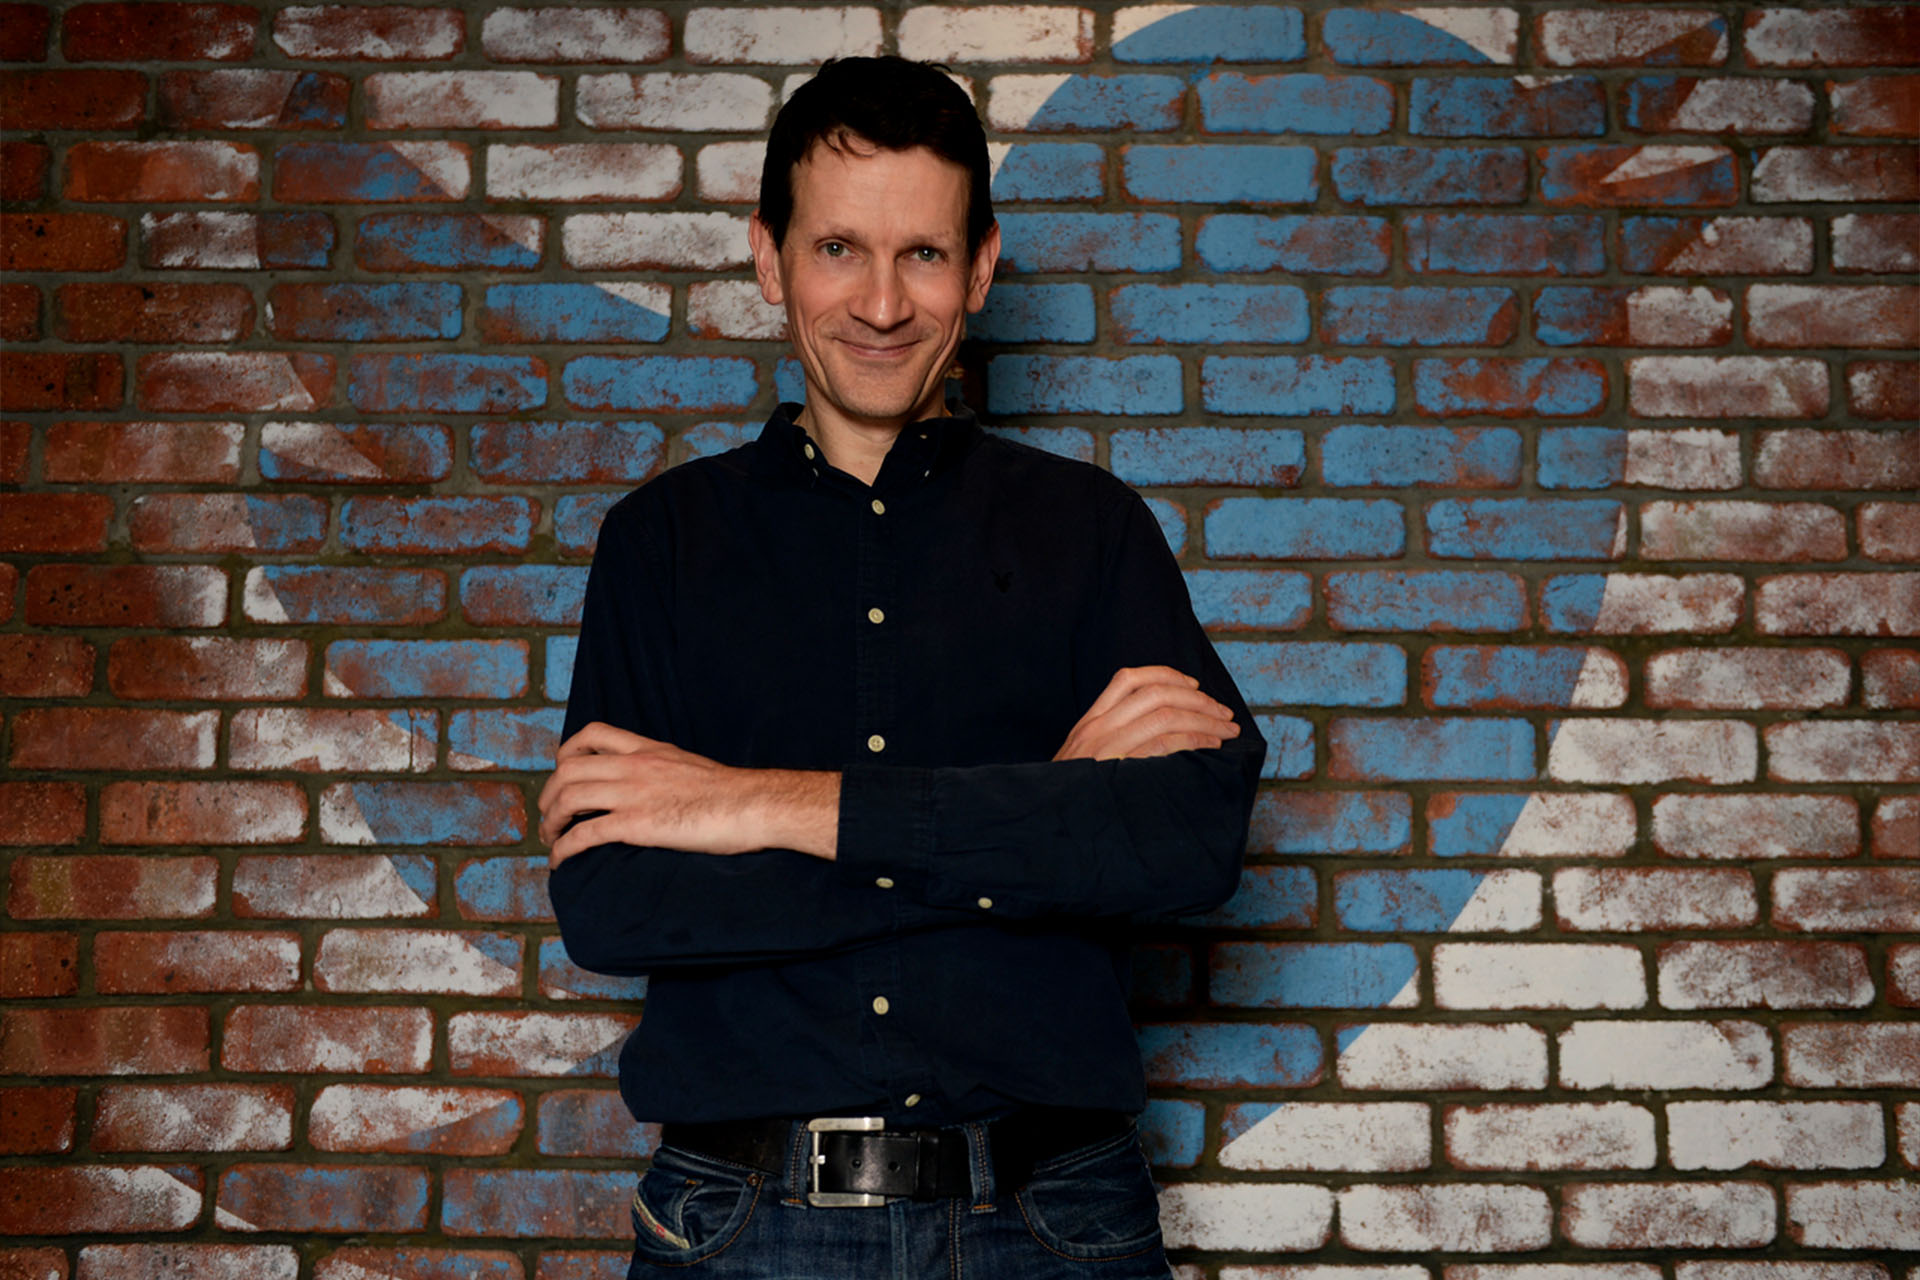 Business Breakfast With Bruce Daisley, European CEO, Twitter